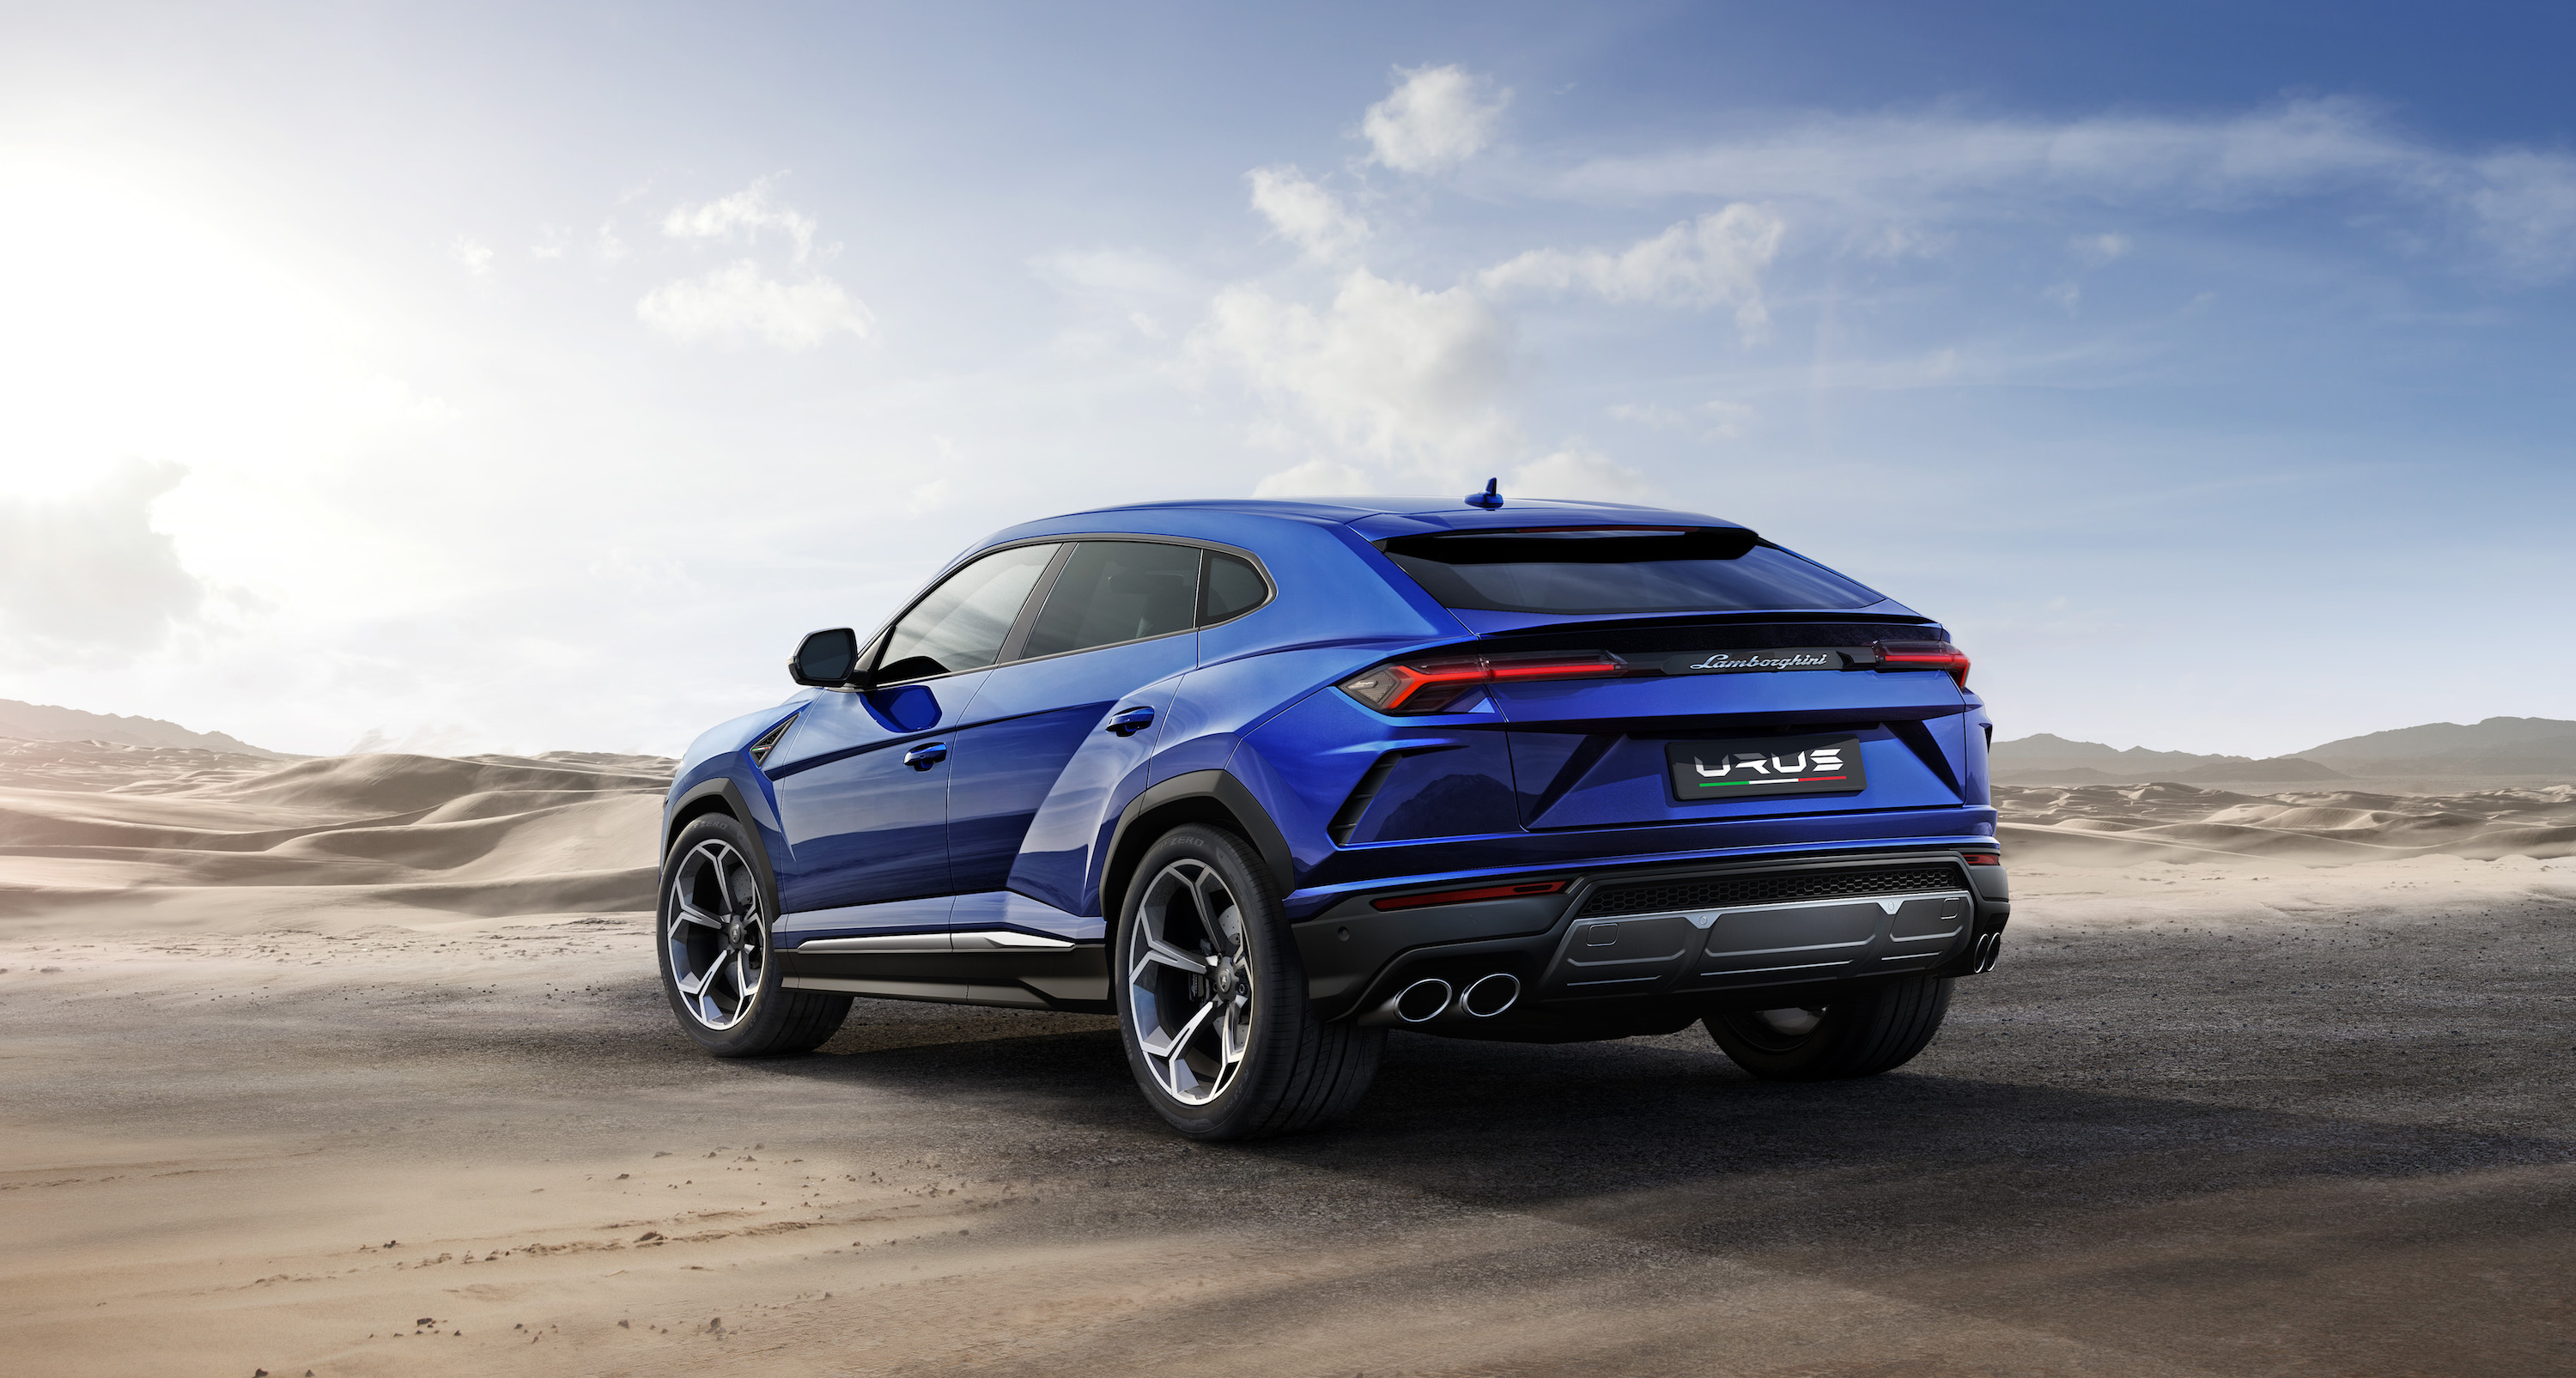 Love Or Loathe The Styling But The Urus Is Powerful Power Will Come From A   Liter V With Two Turbochargers Promising   Mph In As